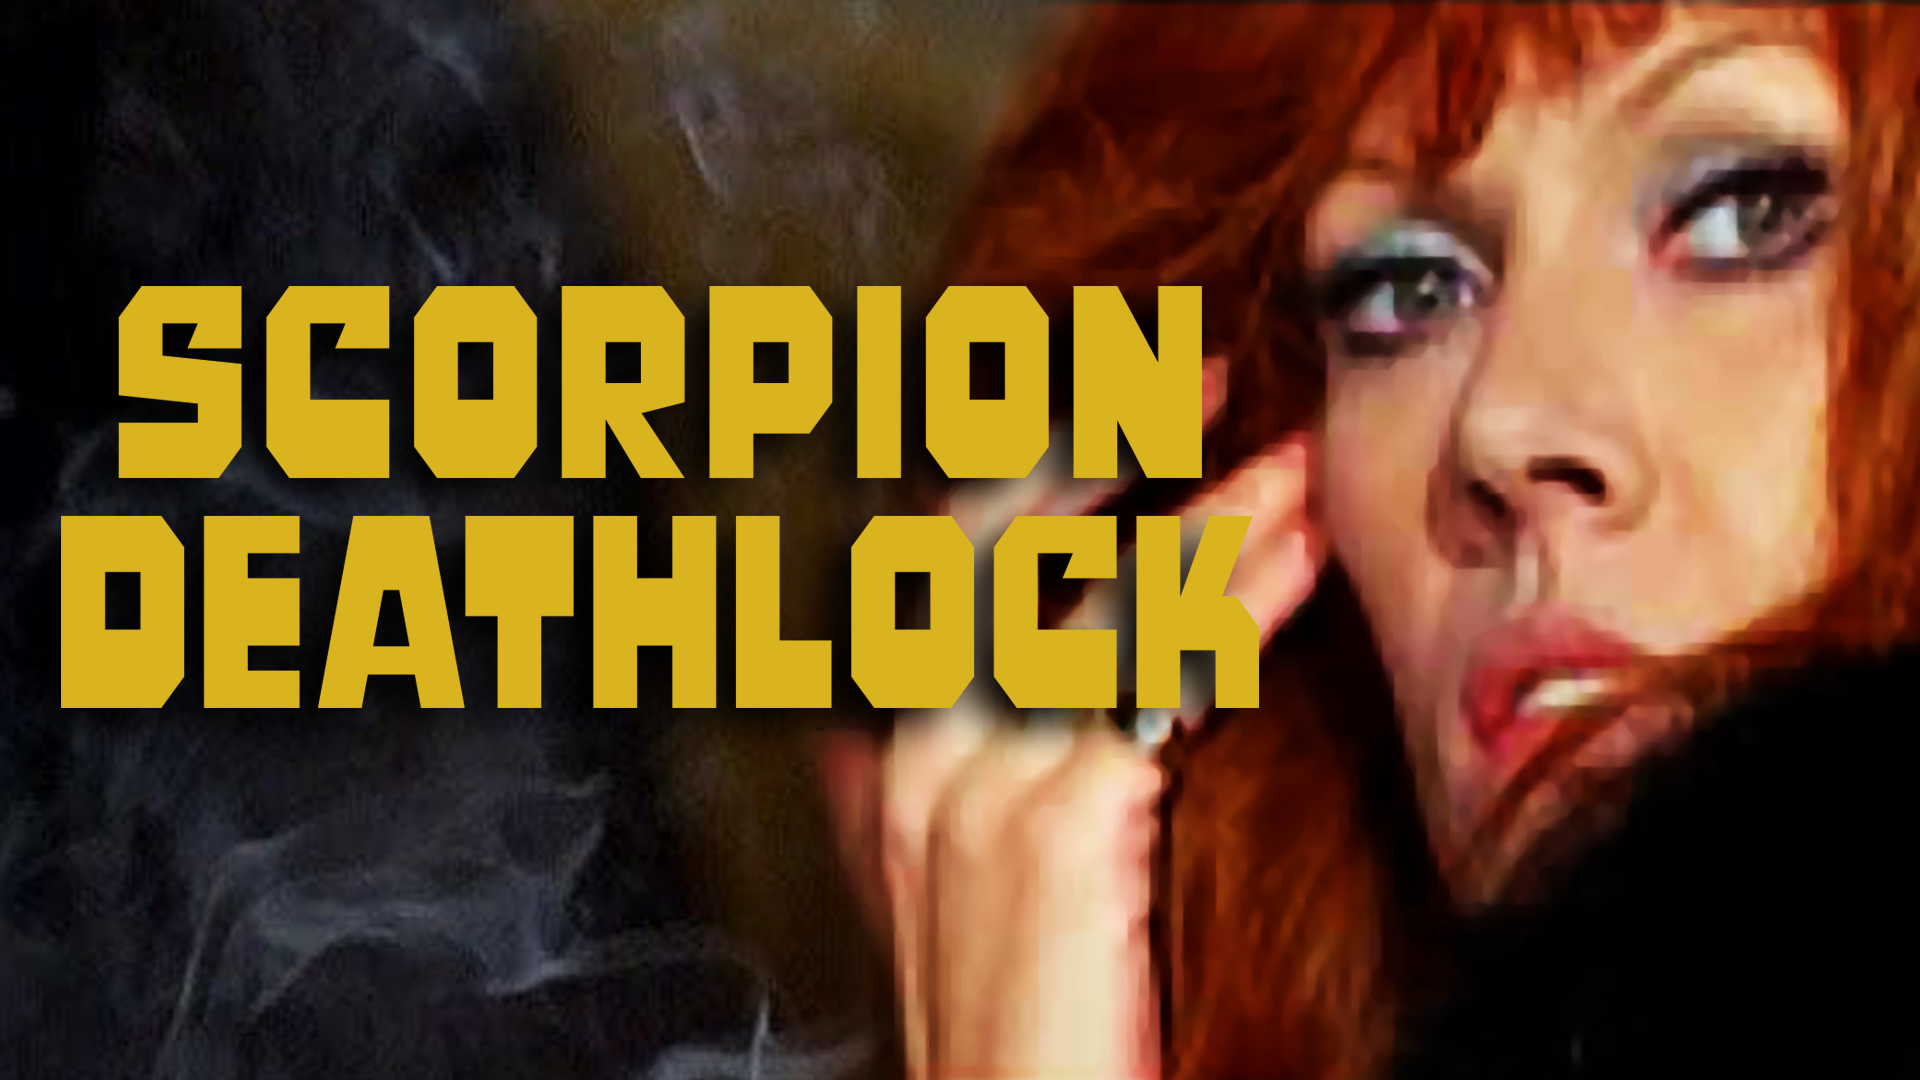 Buy and download Scorpion Deathlock cool fonts